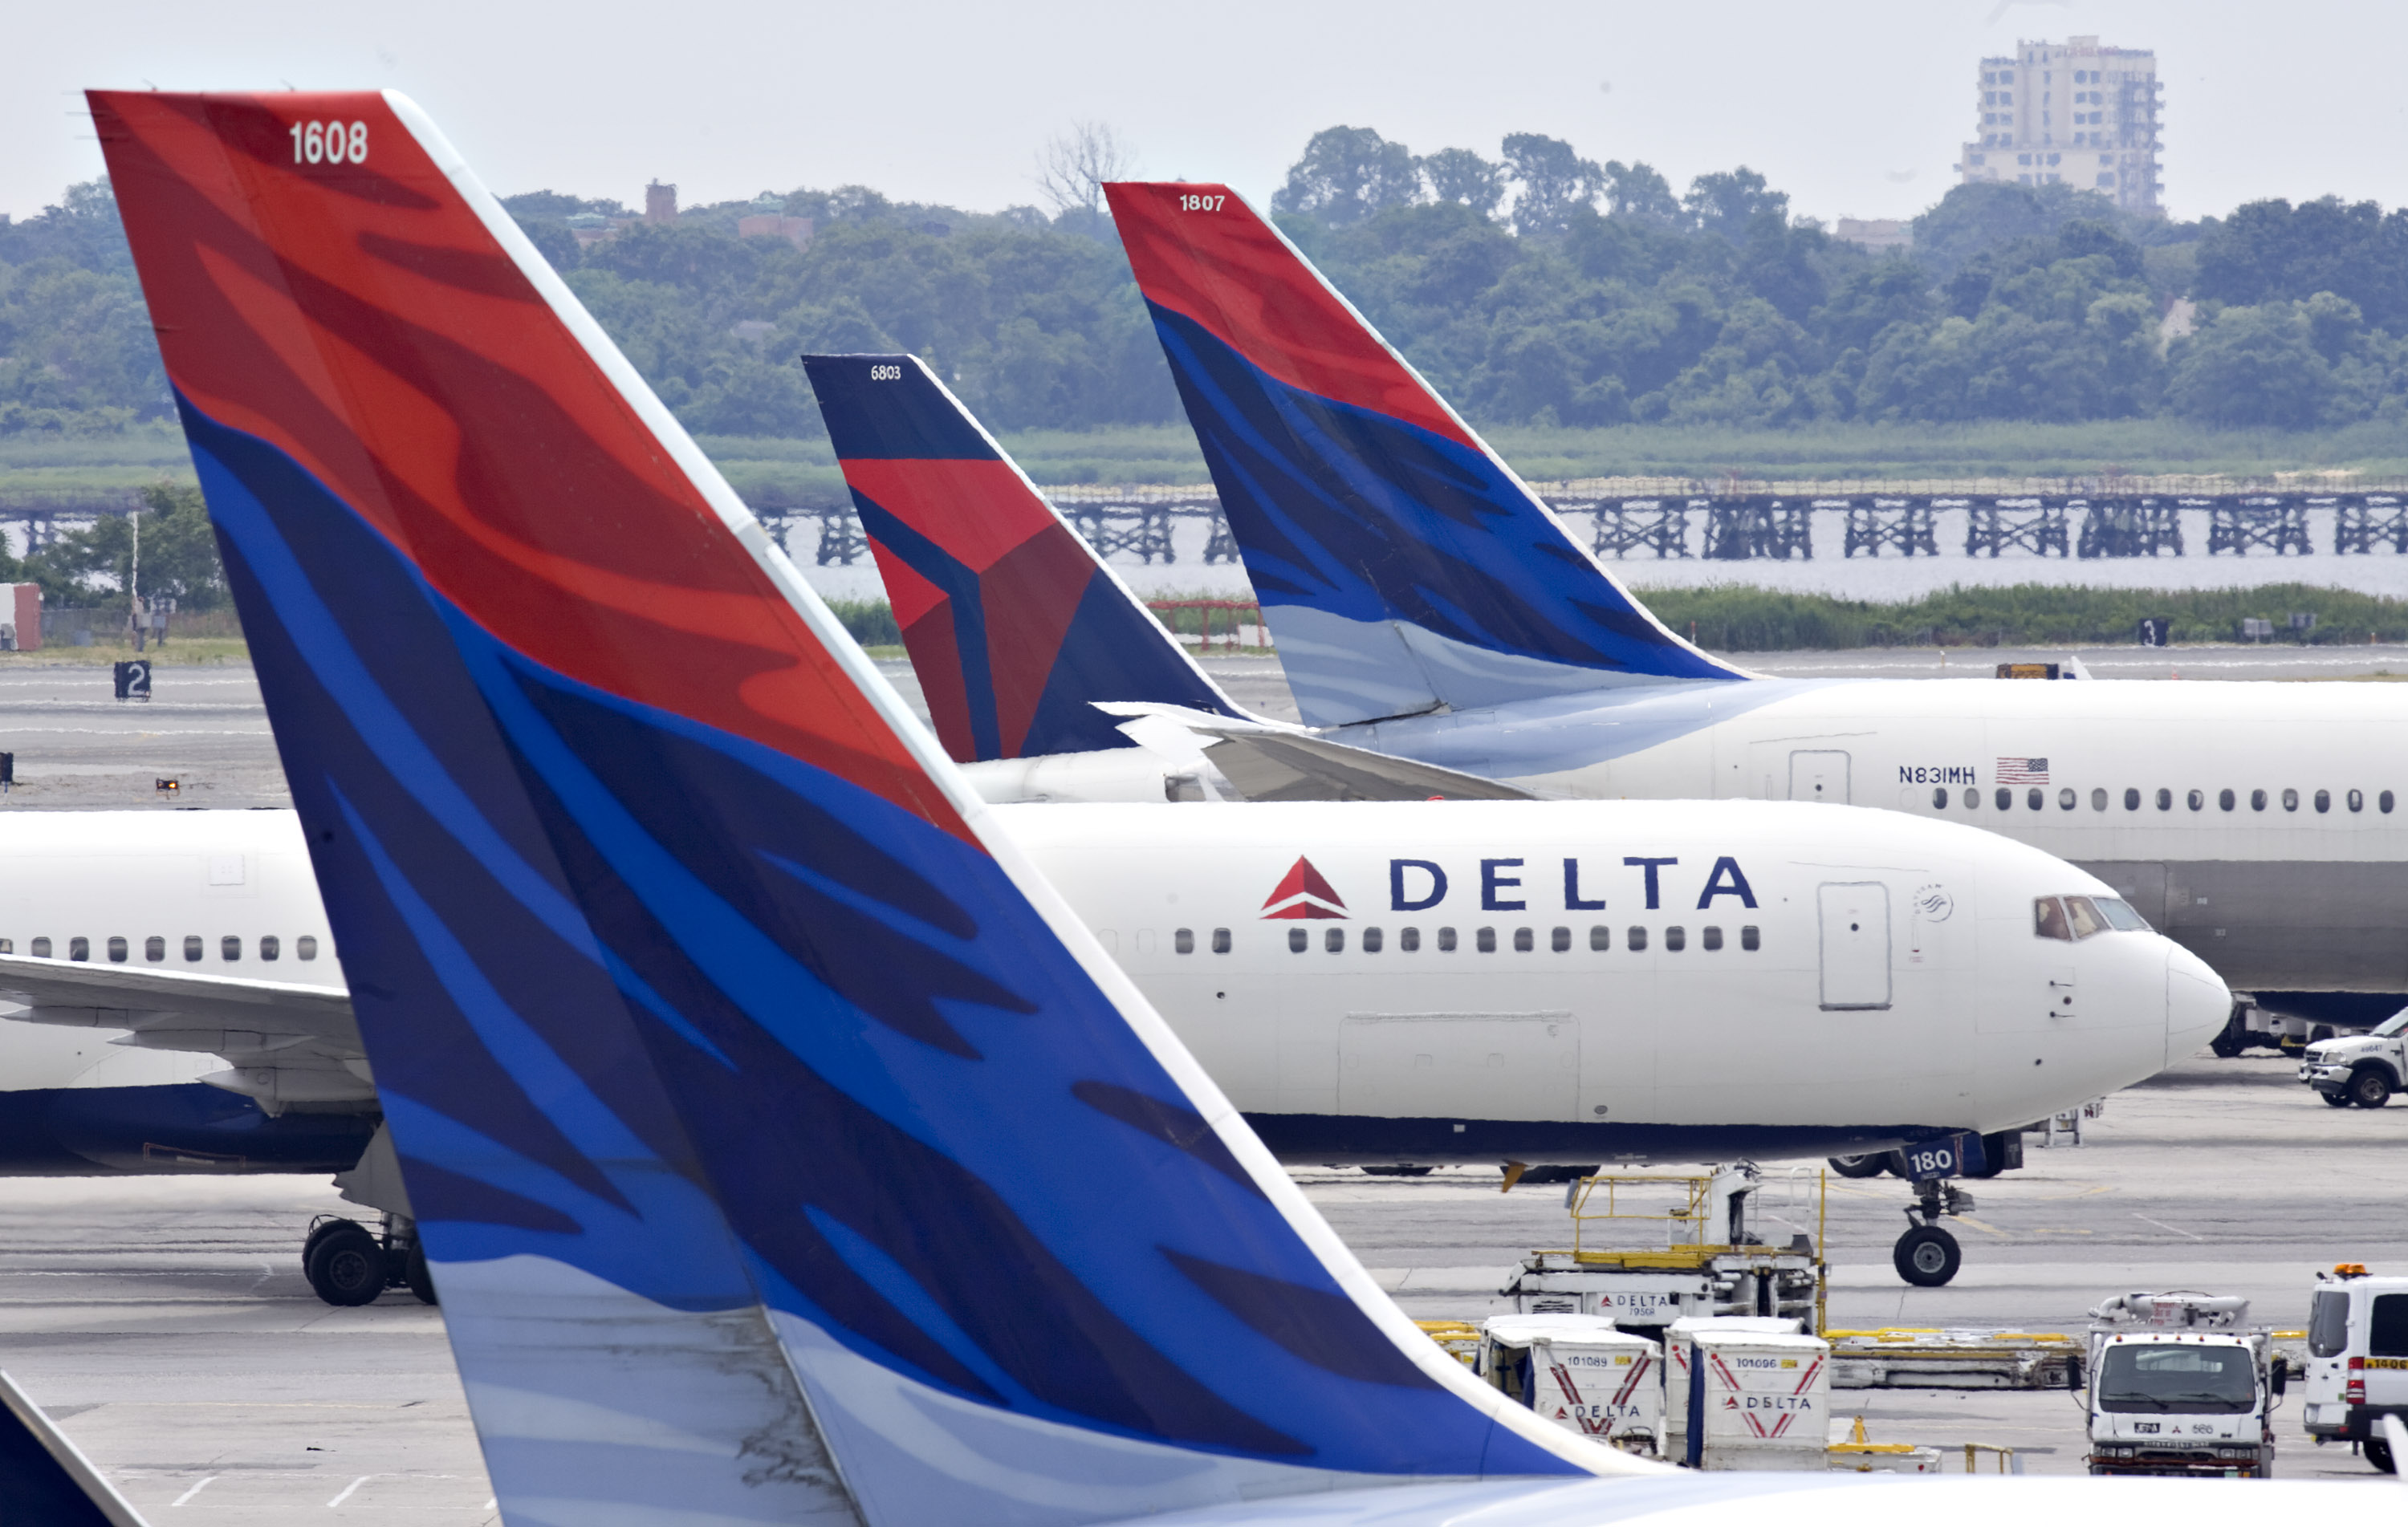 A Delta Air Lines plane taxis toward a gate between other Delta planes at John F. Kennedy International Airport in New York, U.S., on Monday, July 20, 2009.